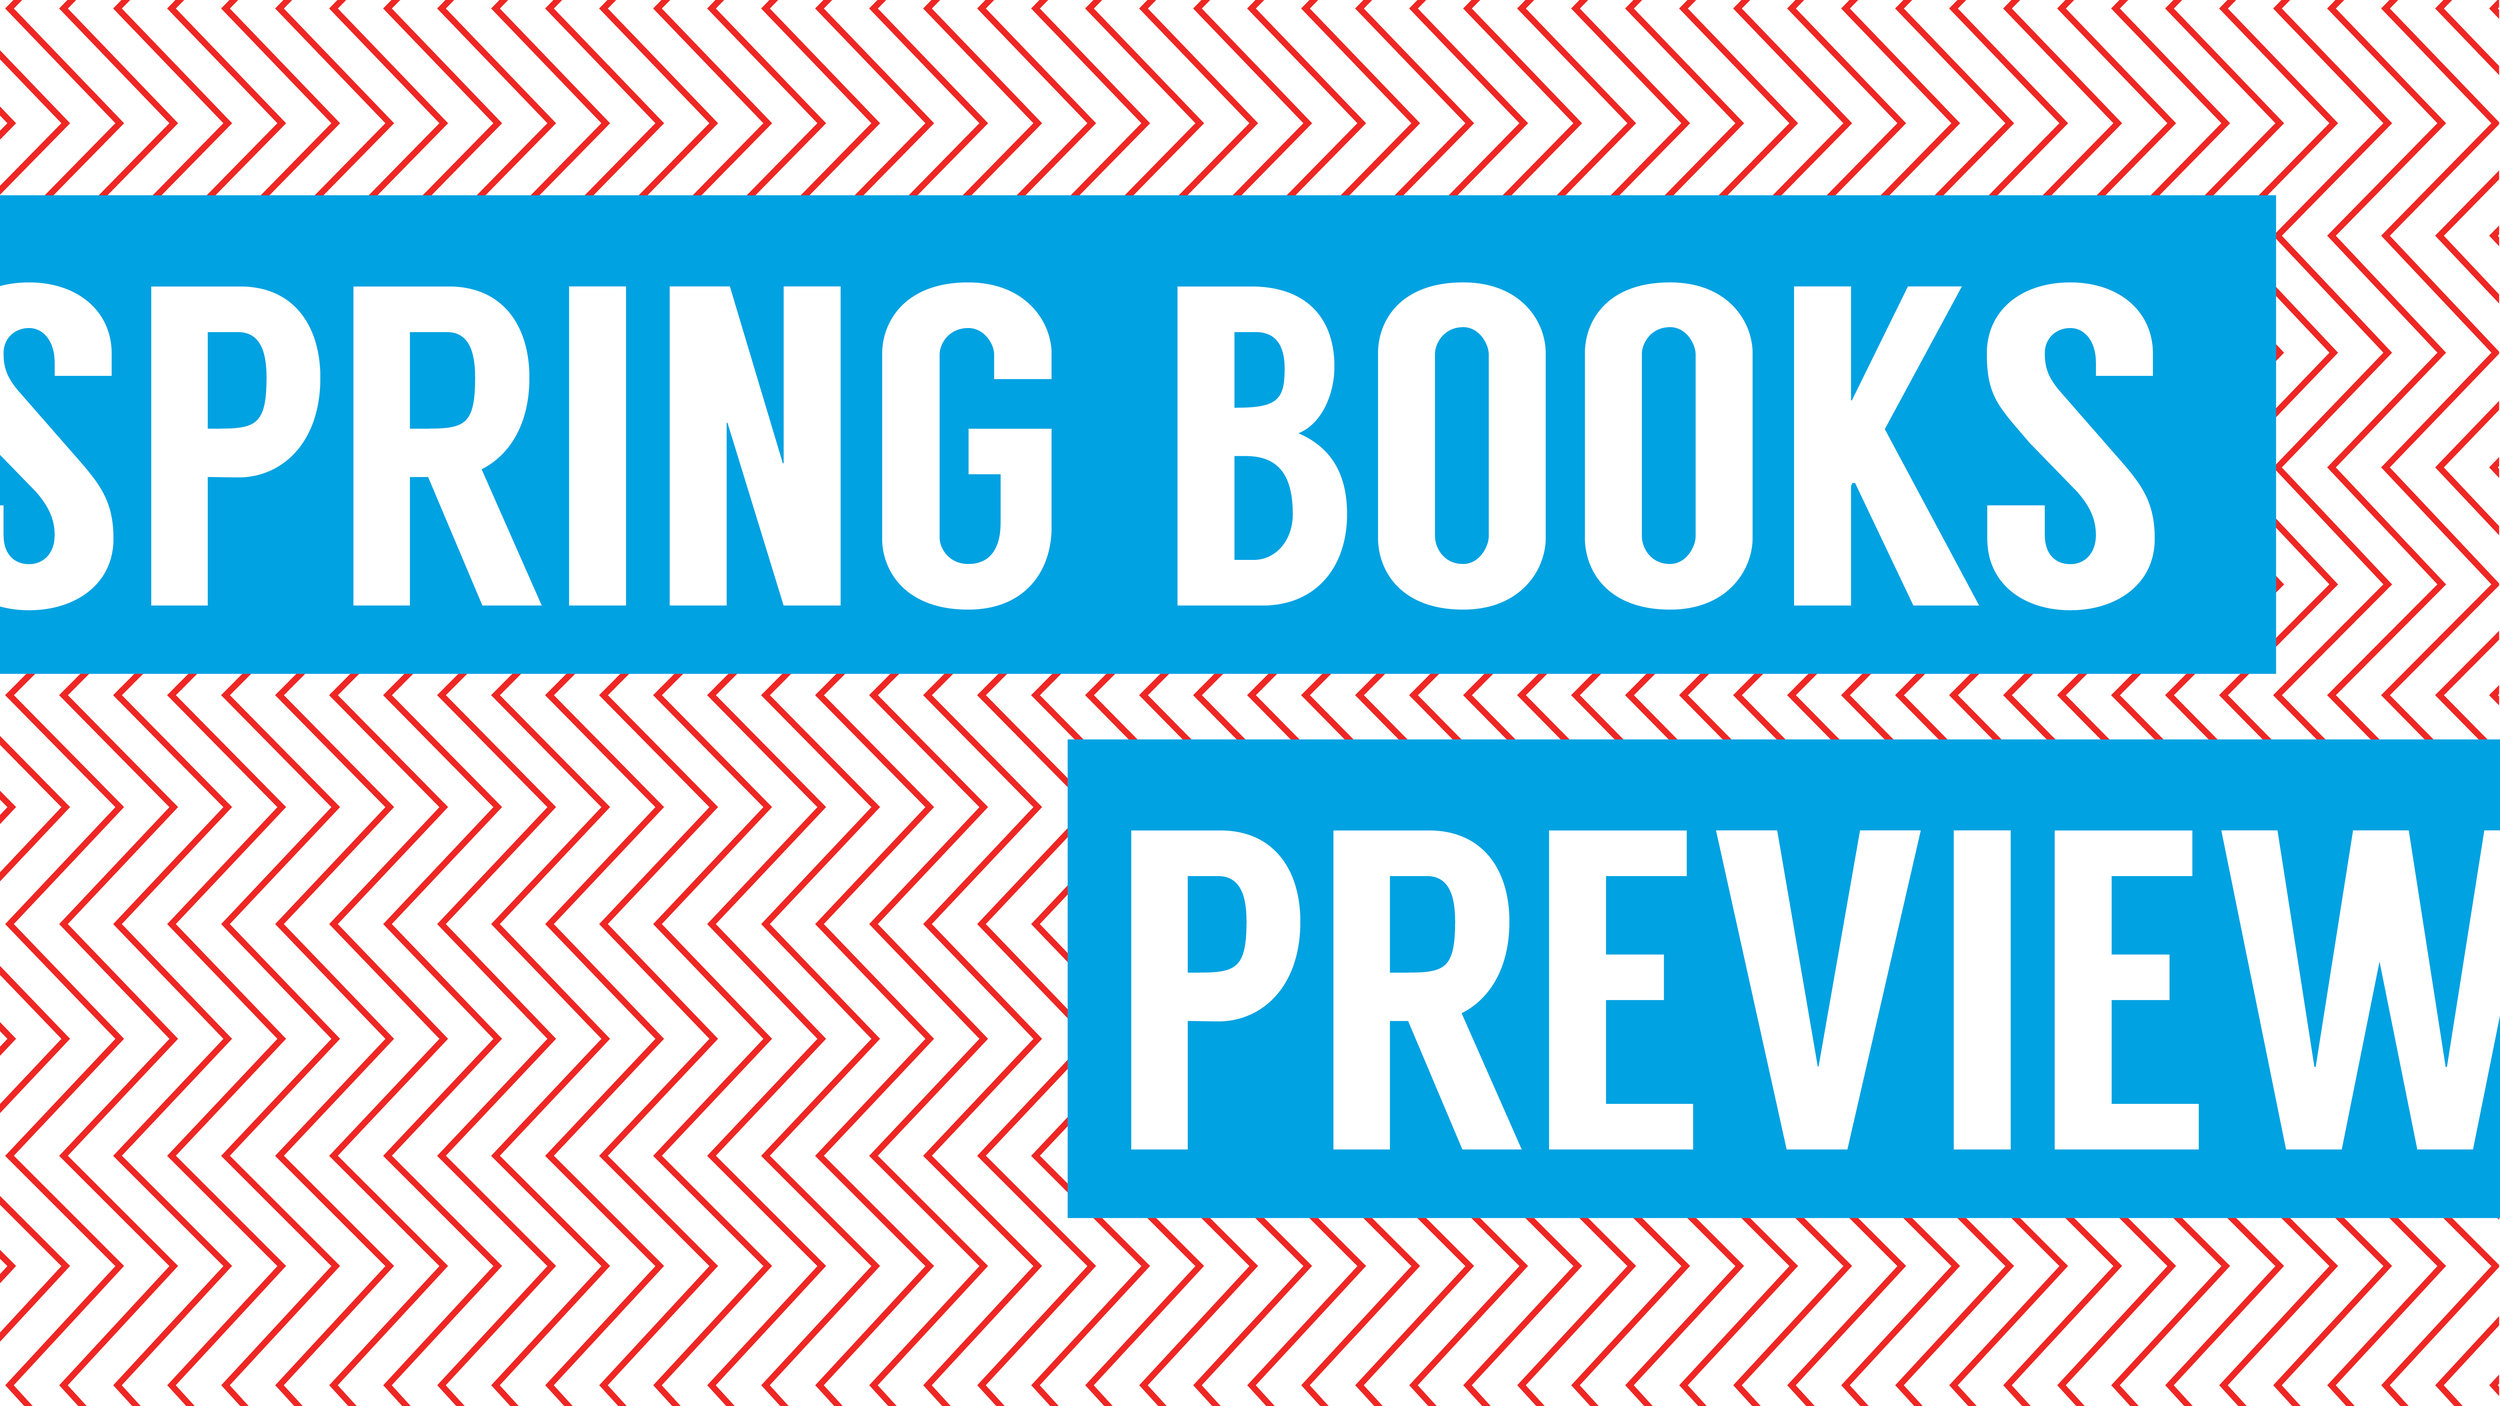 Spring Books Preview